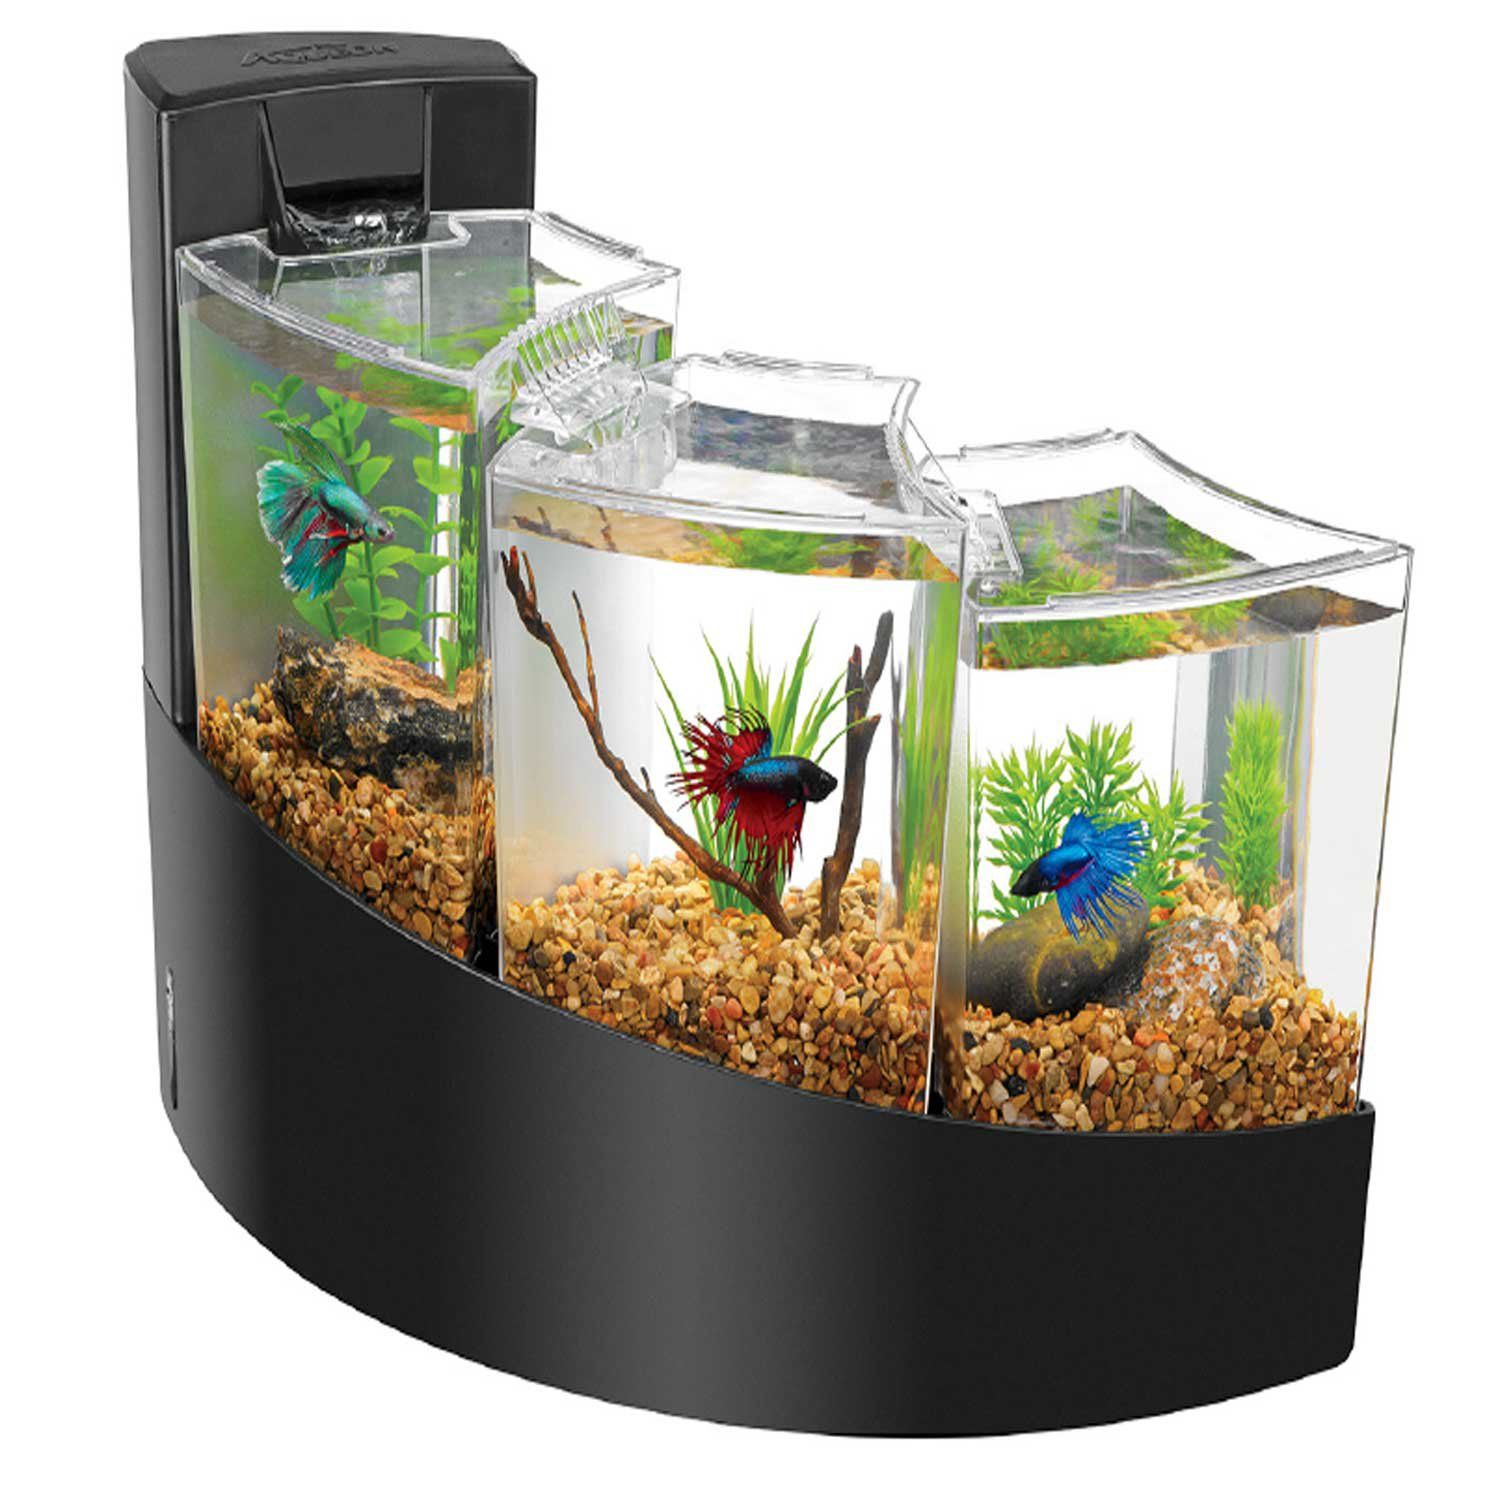 Aqua fashion fish tank 17